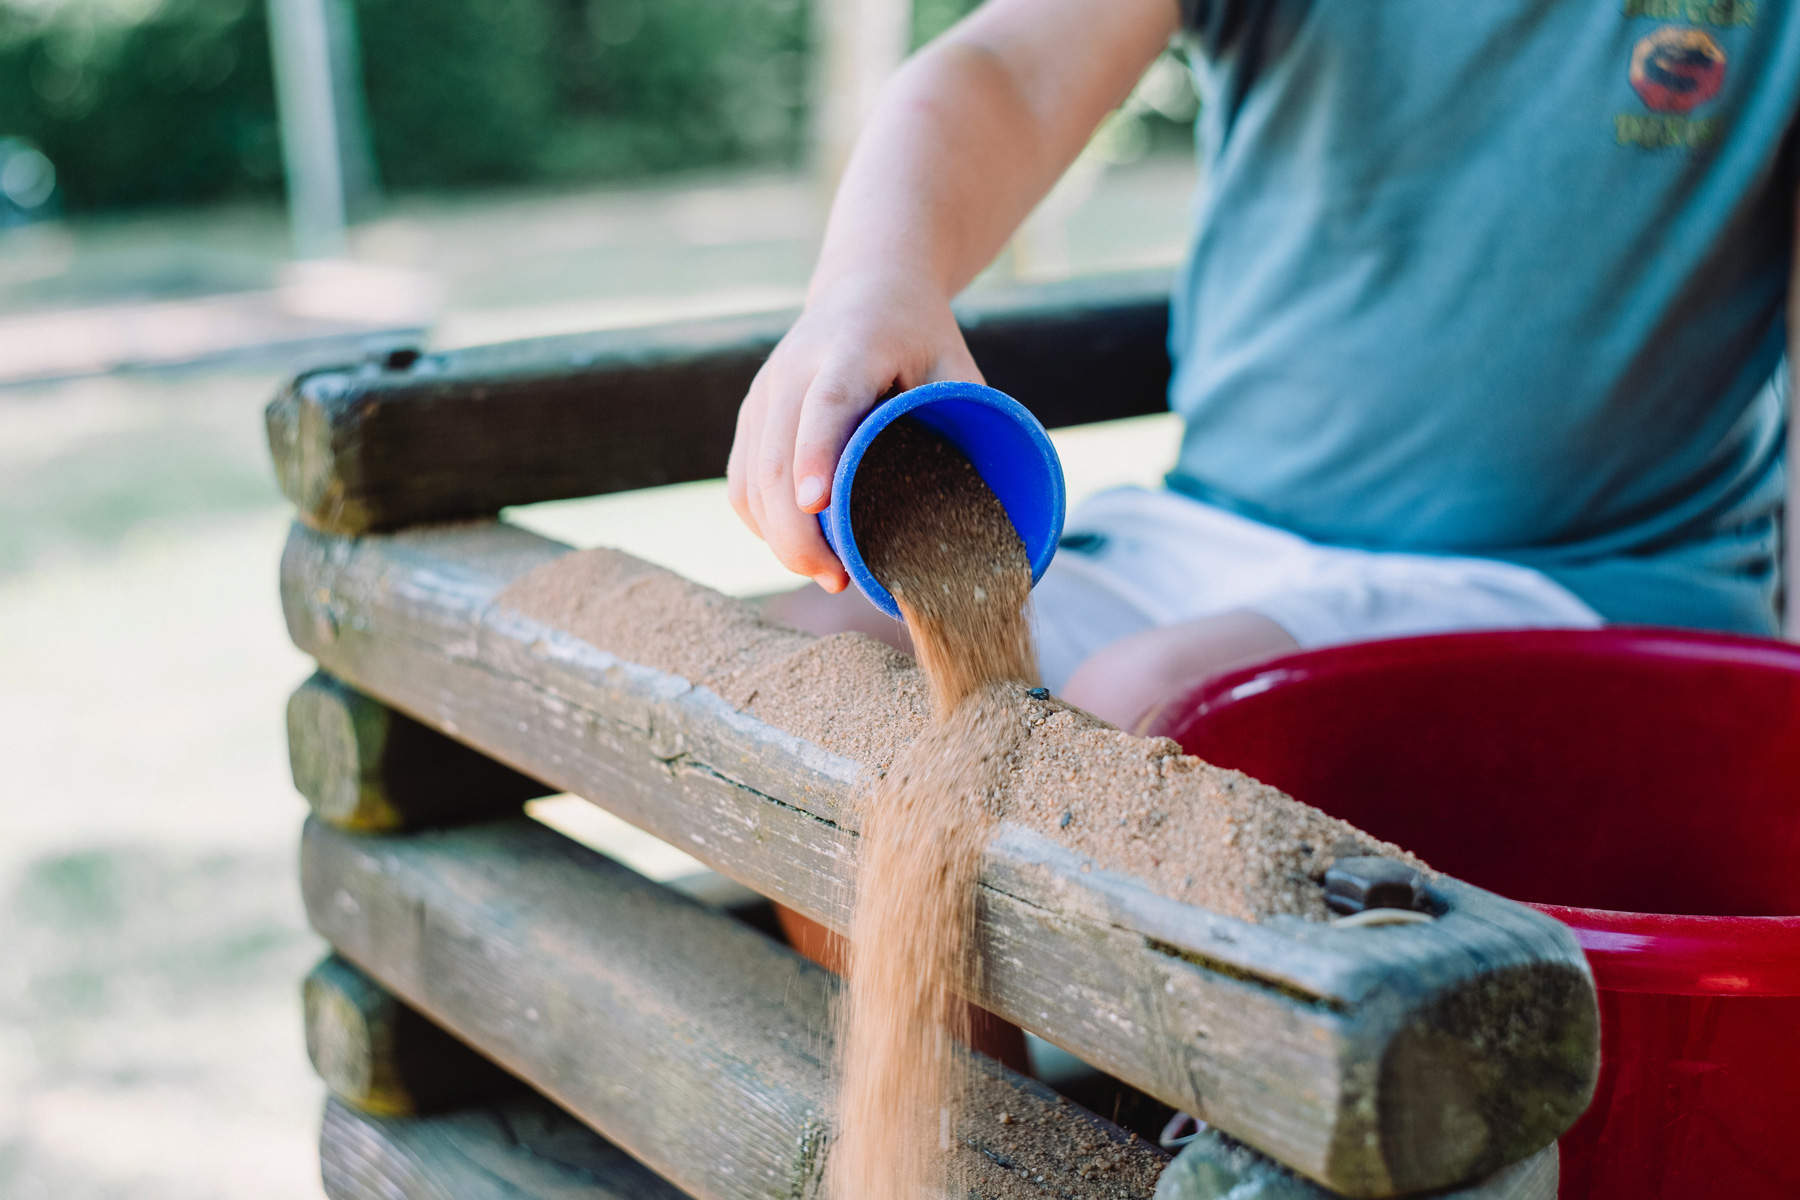 Kid puring sand onto a log with a blue cup